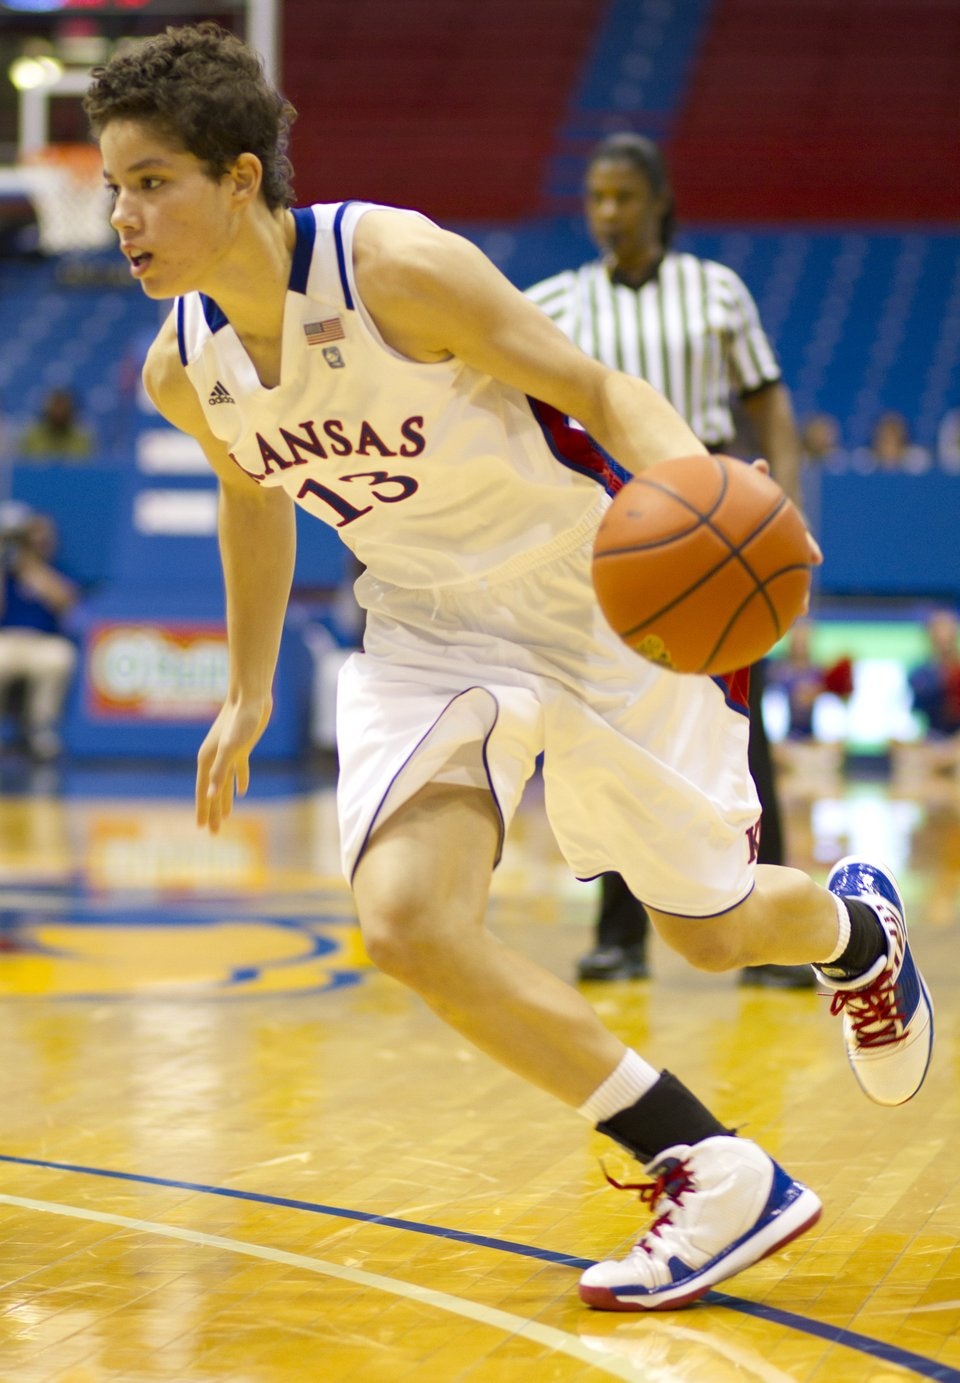 KU women's basketball vs. Fort Hays State | KUsports.com